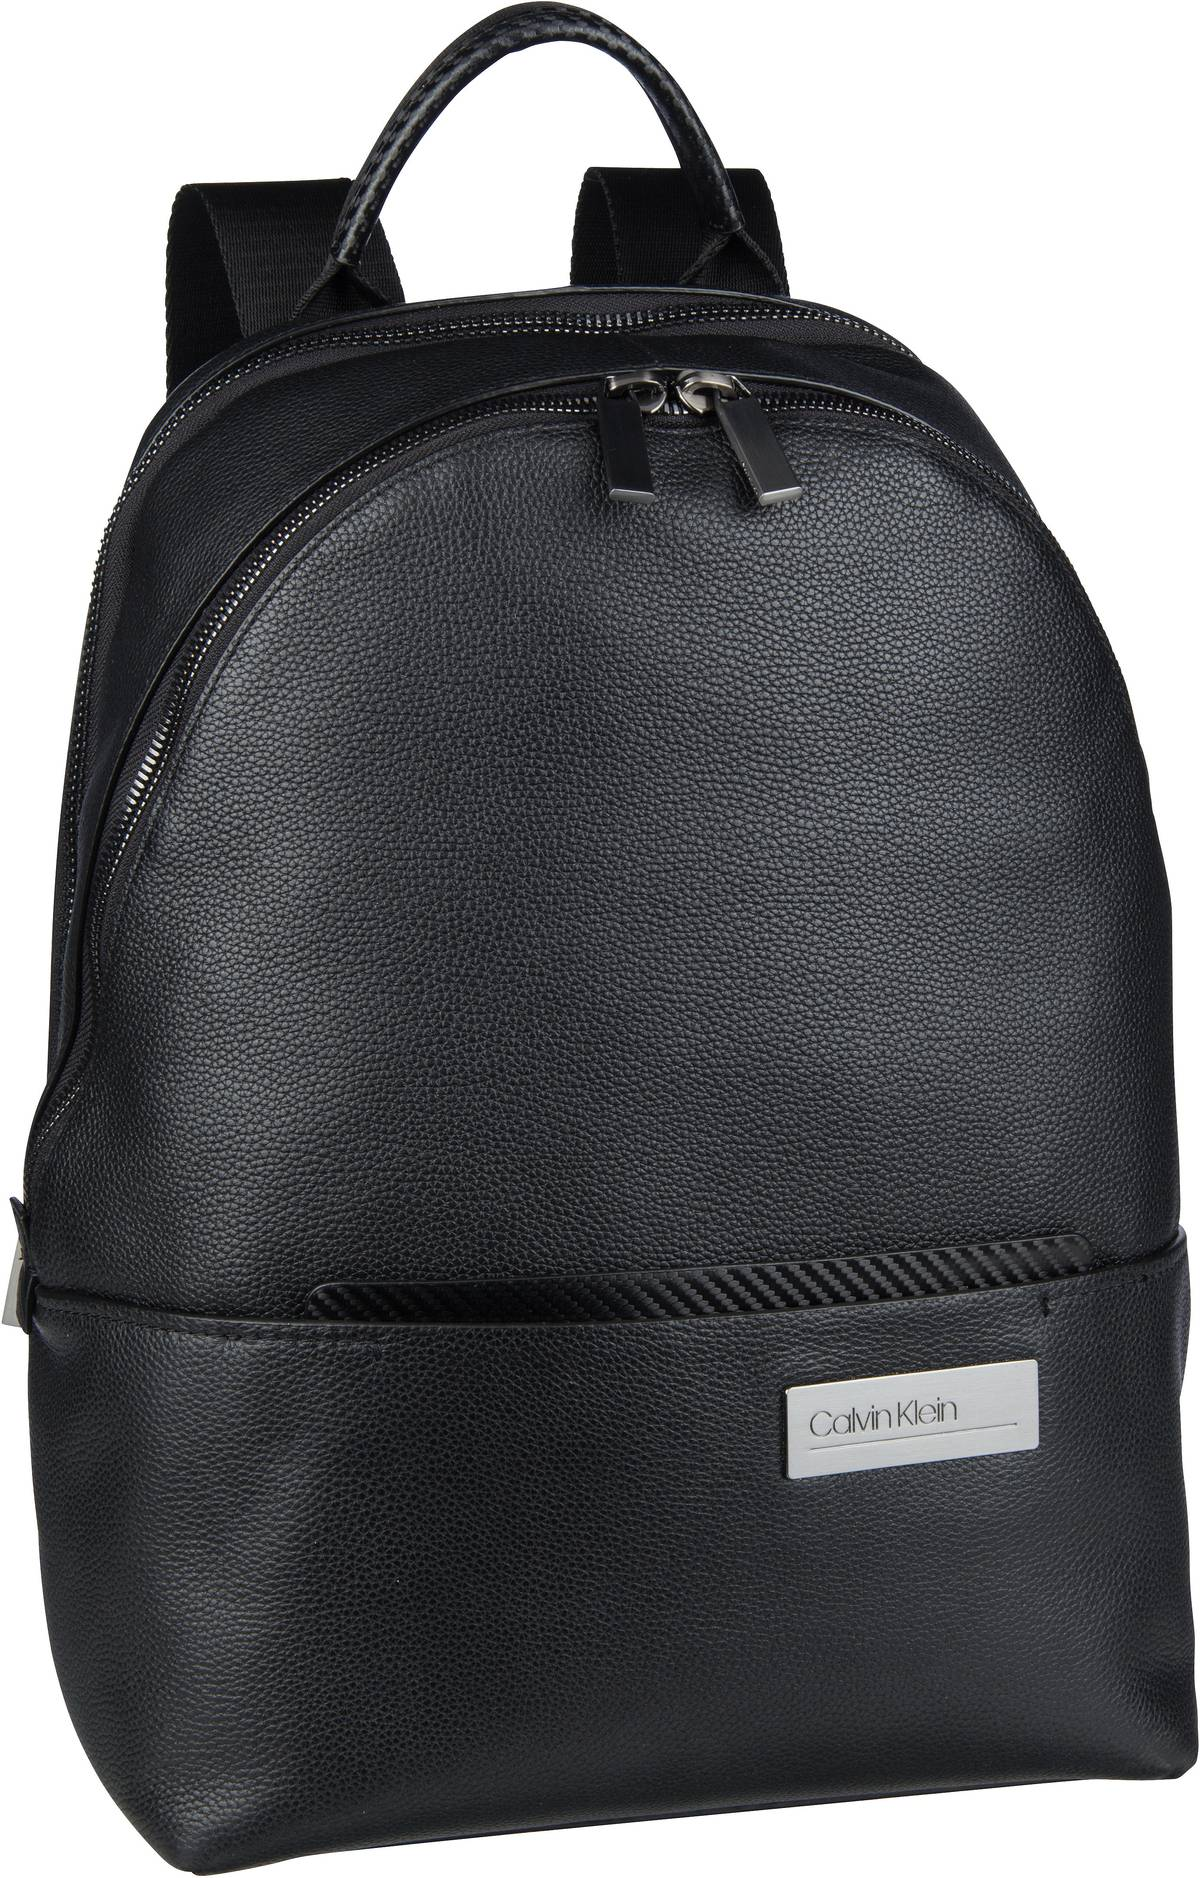 Rucksack / Daypack Classic Carbon 2G Round Backpack Black